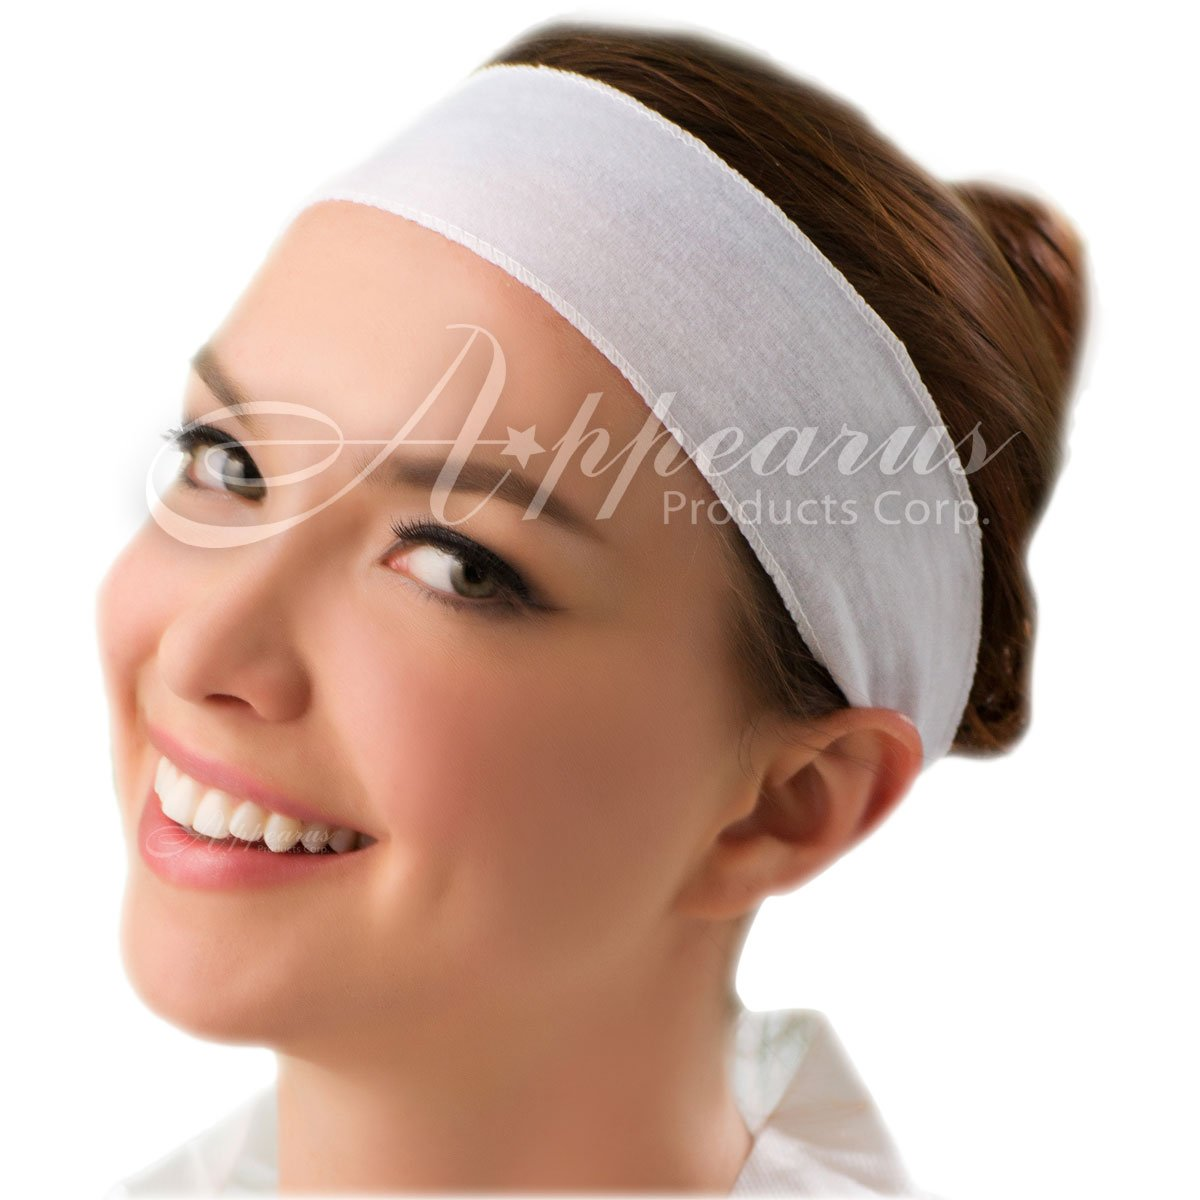 Appearus Disposable Spa Headbands (480 count / AH1051x10)